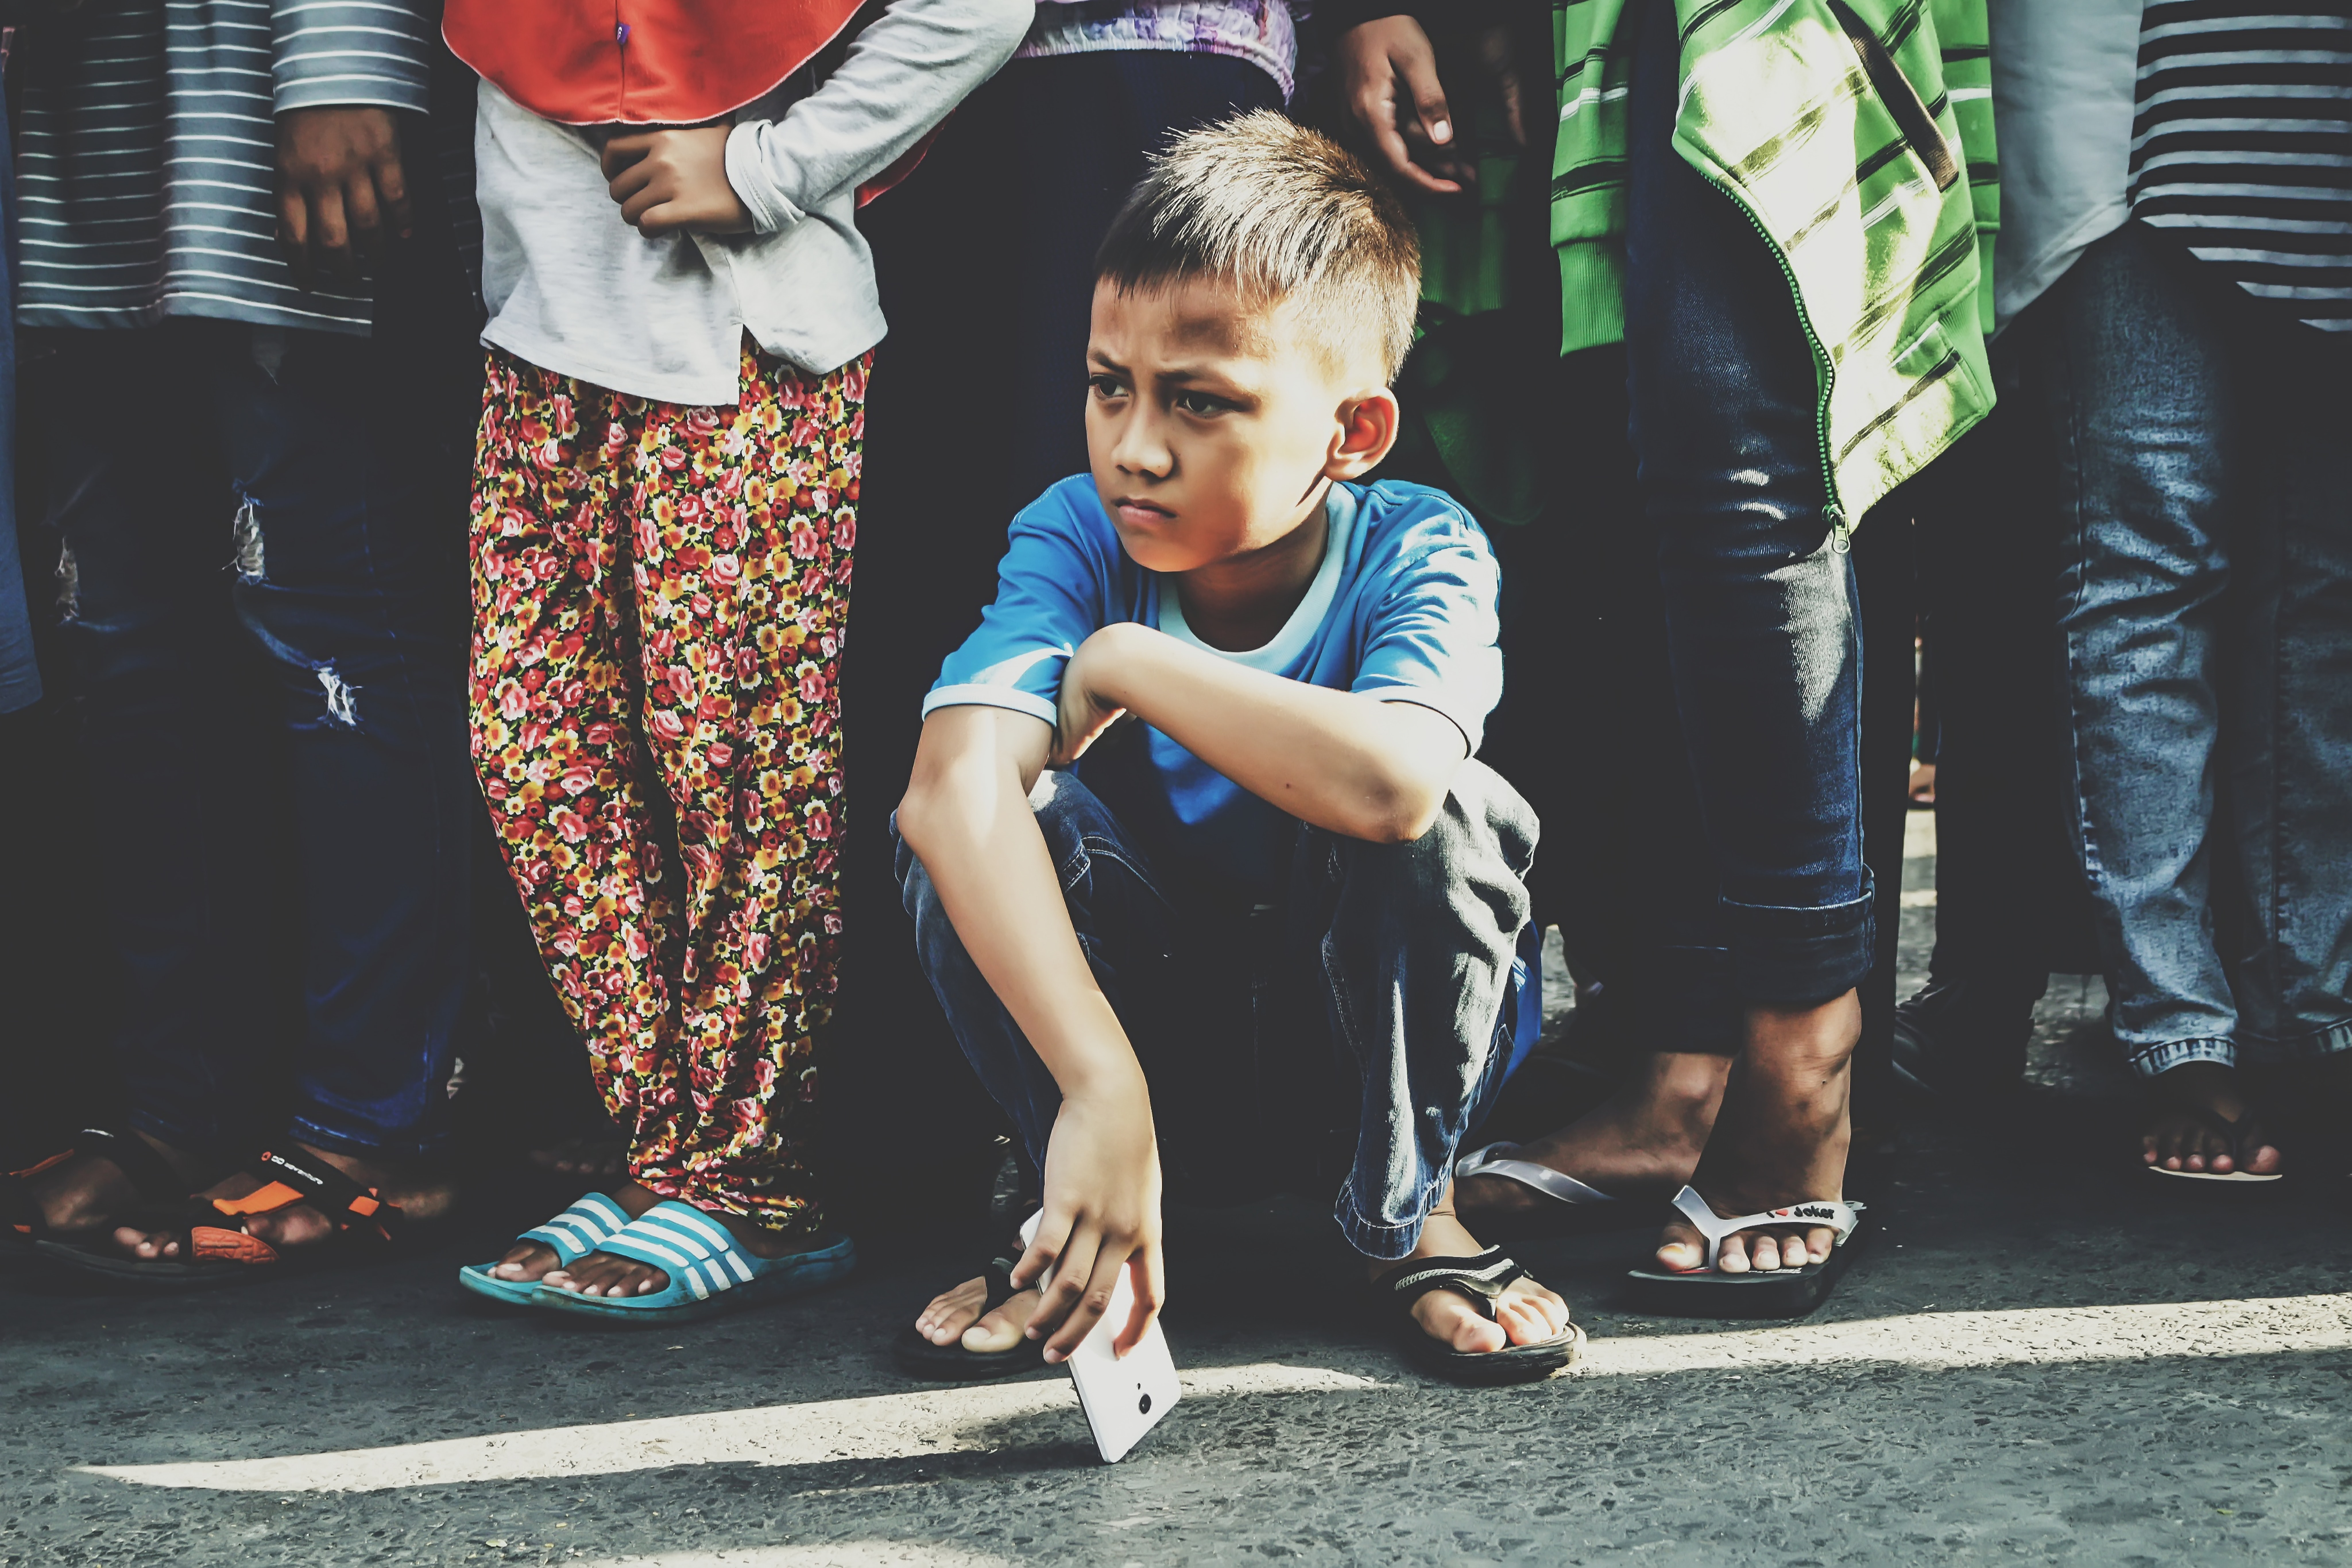 Upset looking boy squatting in front of a crowd